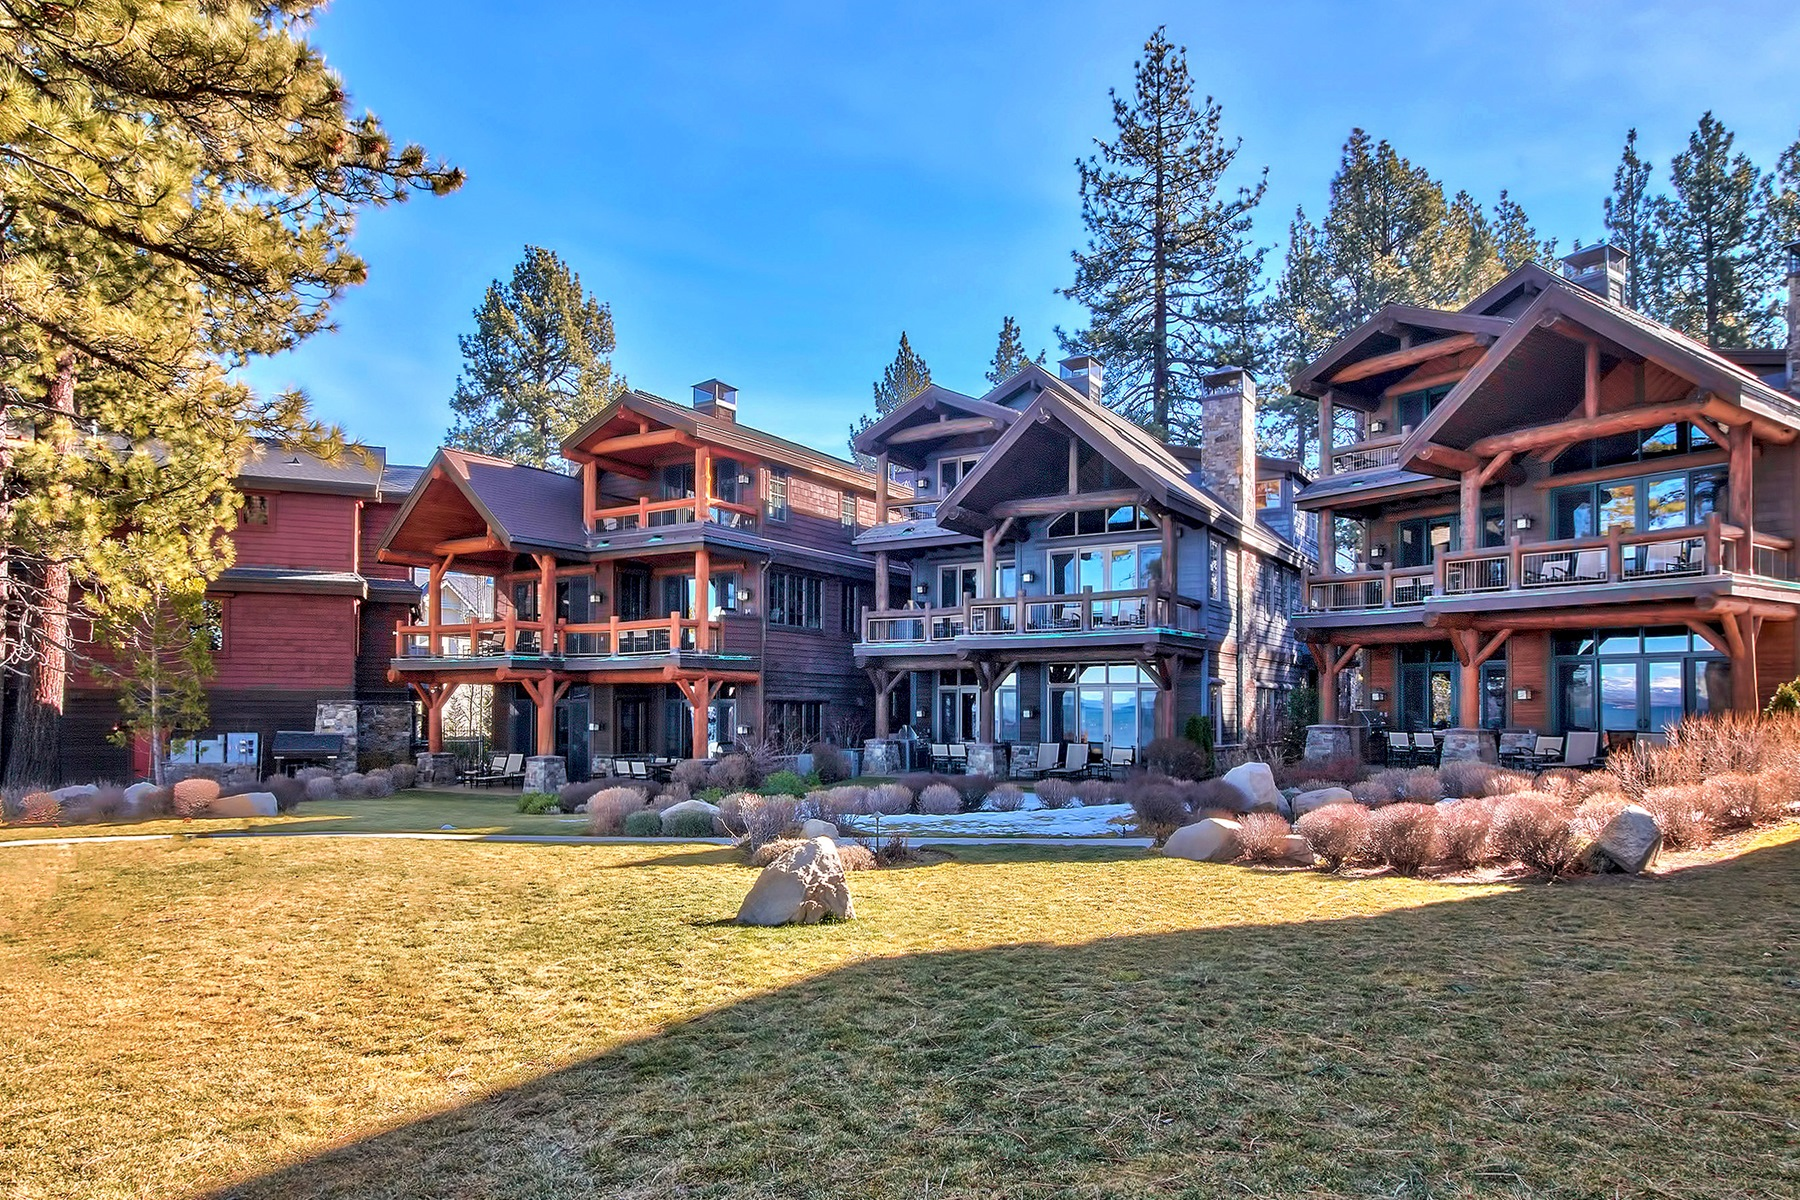 共管物業 為 出售 在 3371 Lake Tahoe Boulevard, Residence 11 3371 Lake Tahoe Boulevard Residence 11 South Lake Tahoe, 加利福尼亞州, 96150 Lake Tahoe, 美國